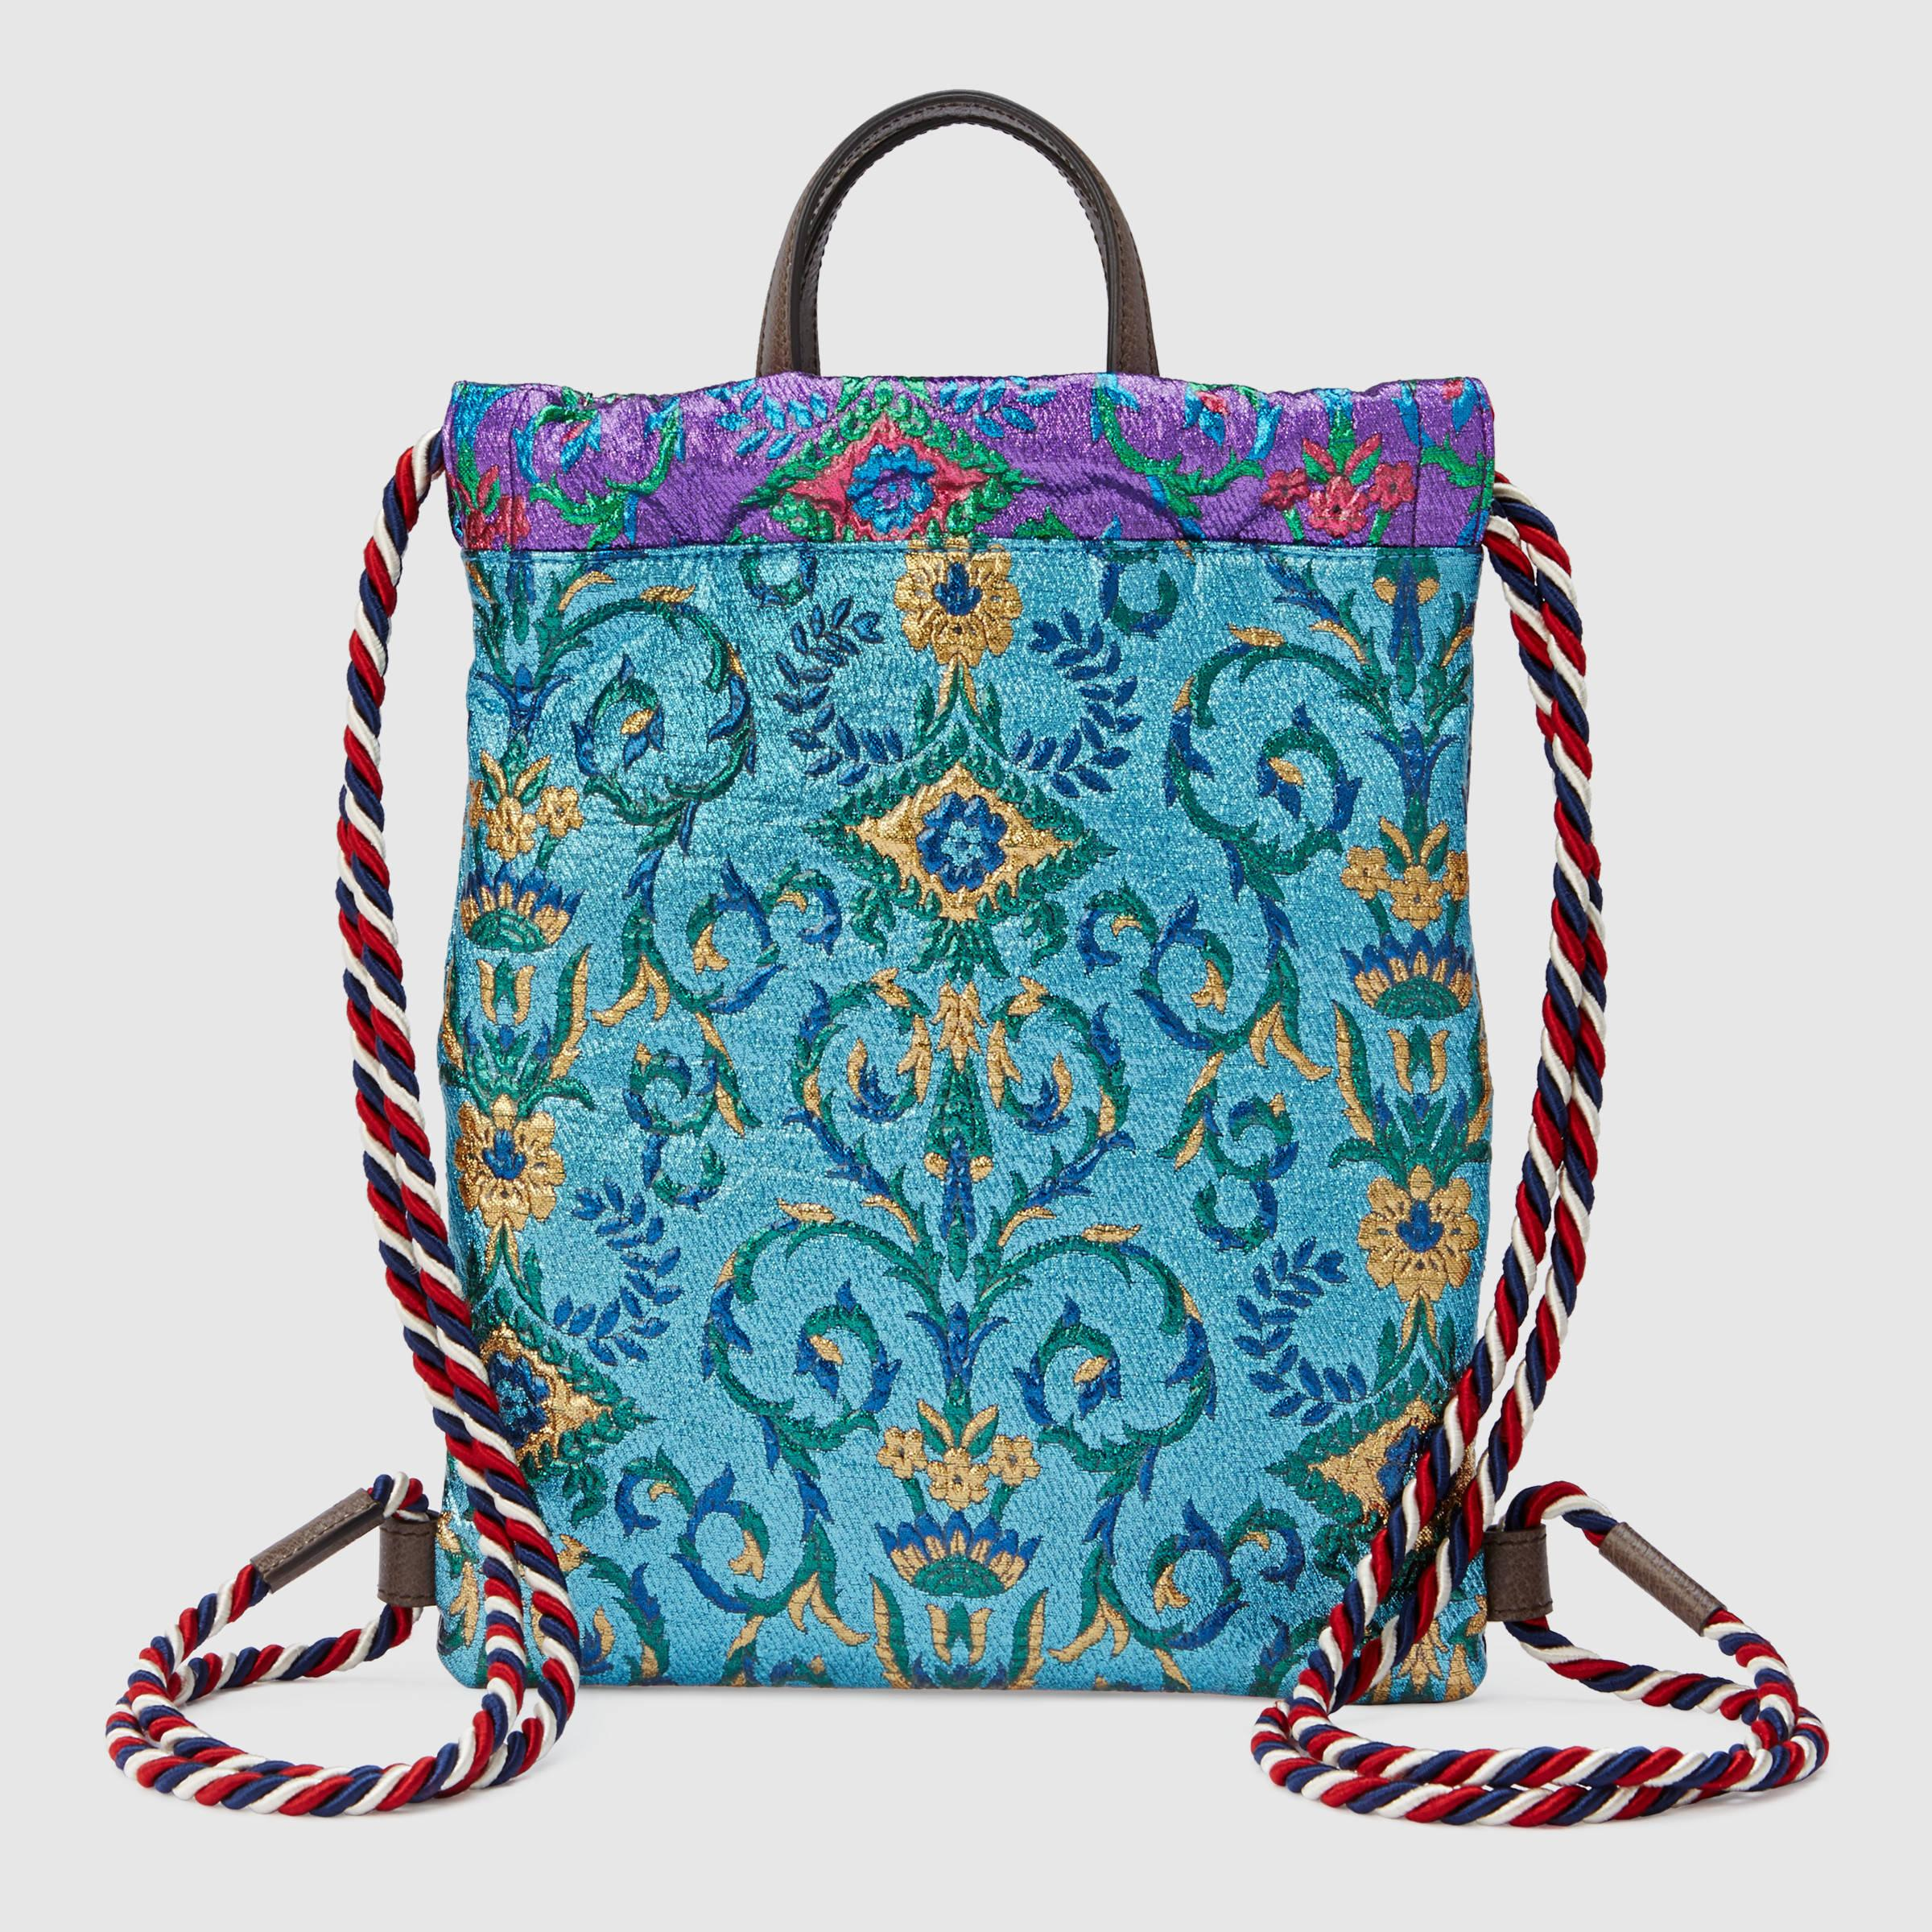 47c27f2889374f Lyst - Gucci Brocade Drawstring Backpack in Blue